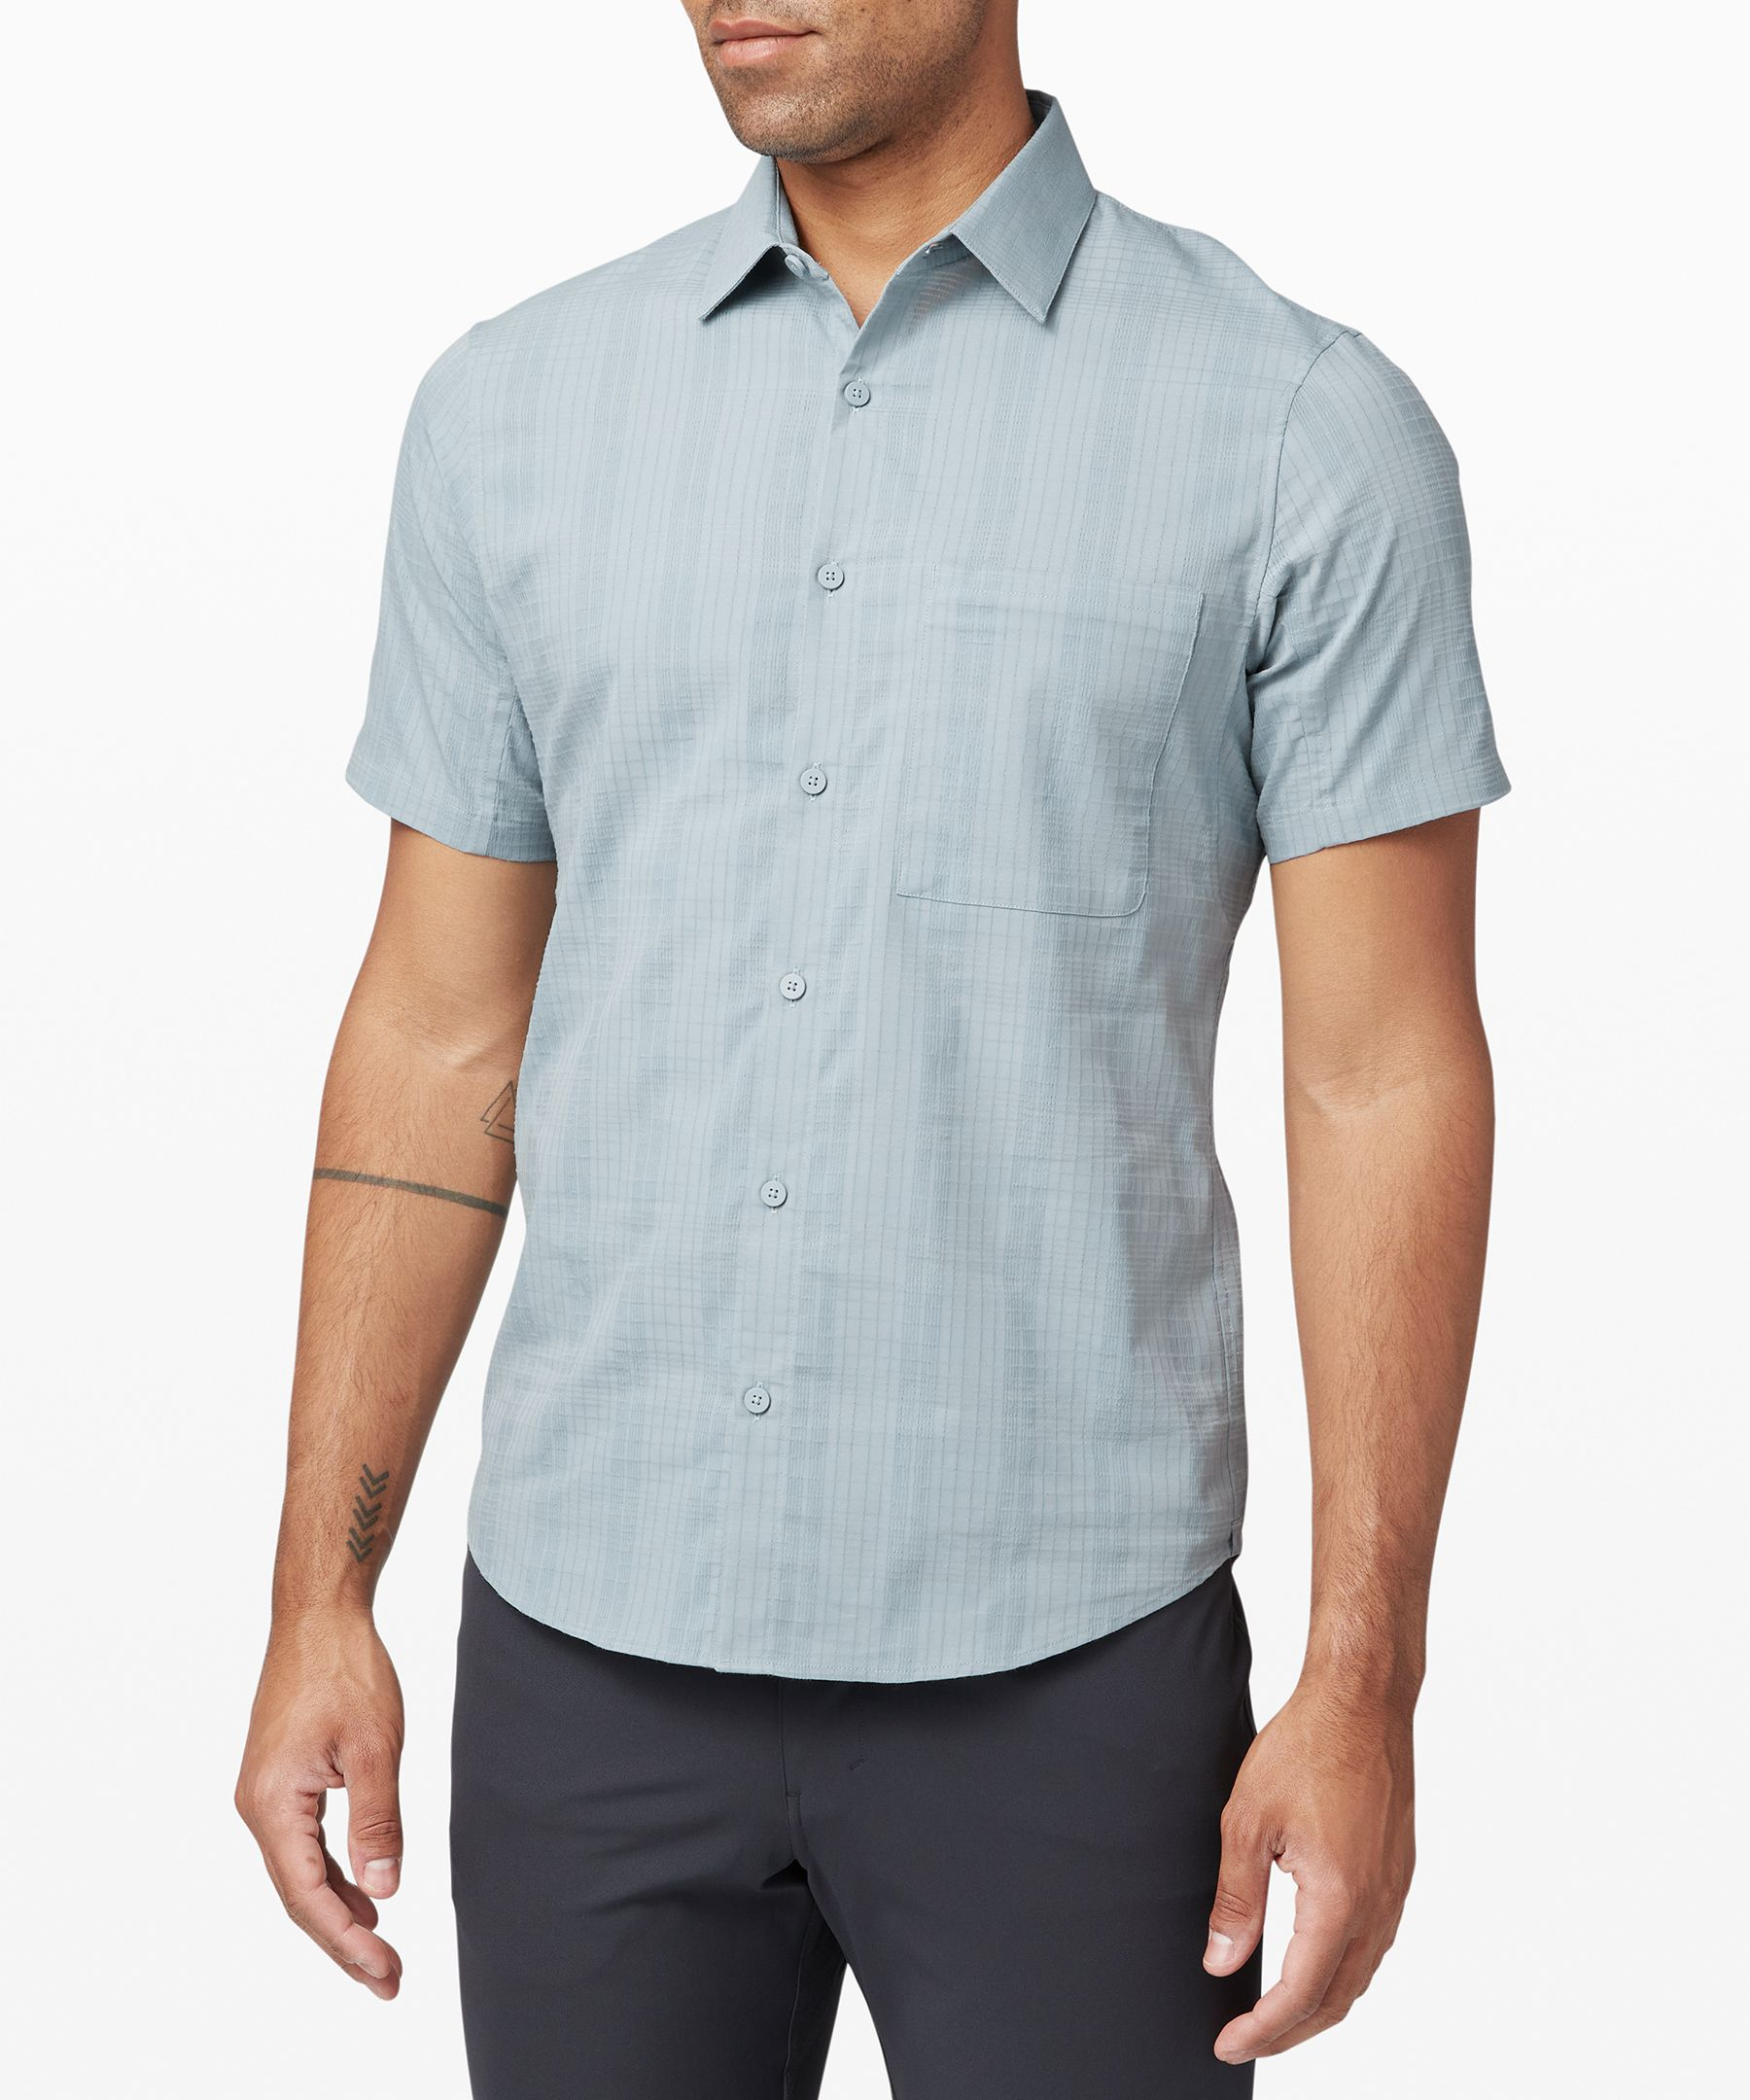 This collared shirt feels as  good as it looks. Made from  stretchy Technical Cotton  fabric with anti-stink  technology, you\\\'ll wear it  again and again and again.